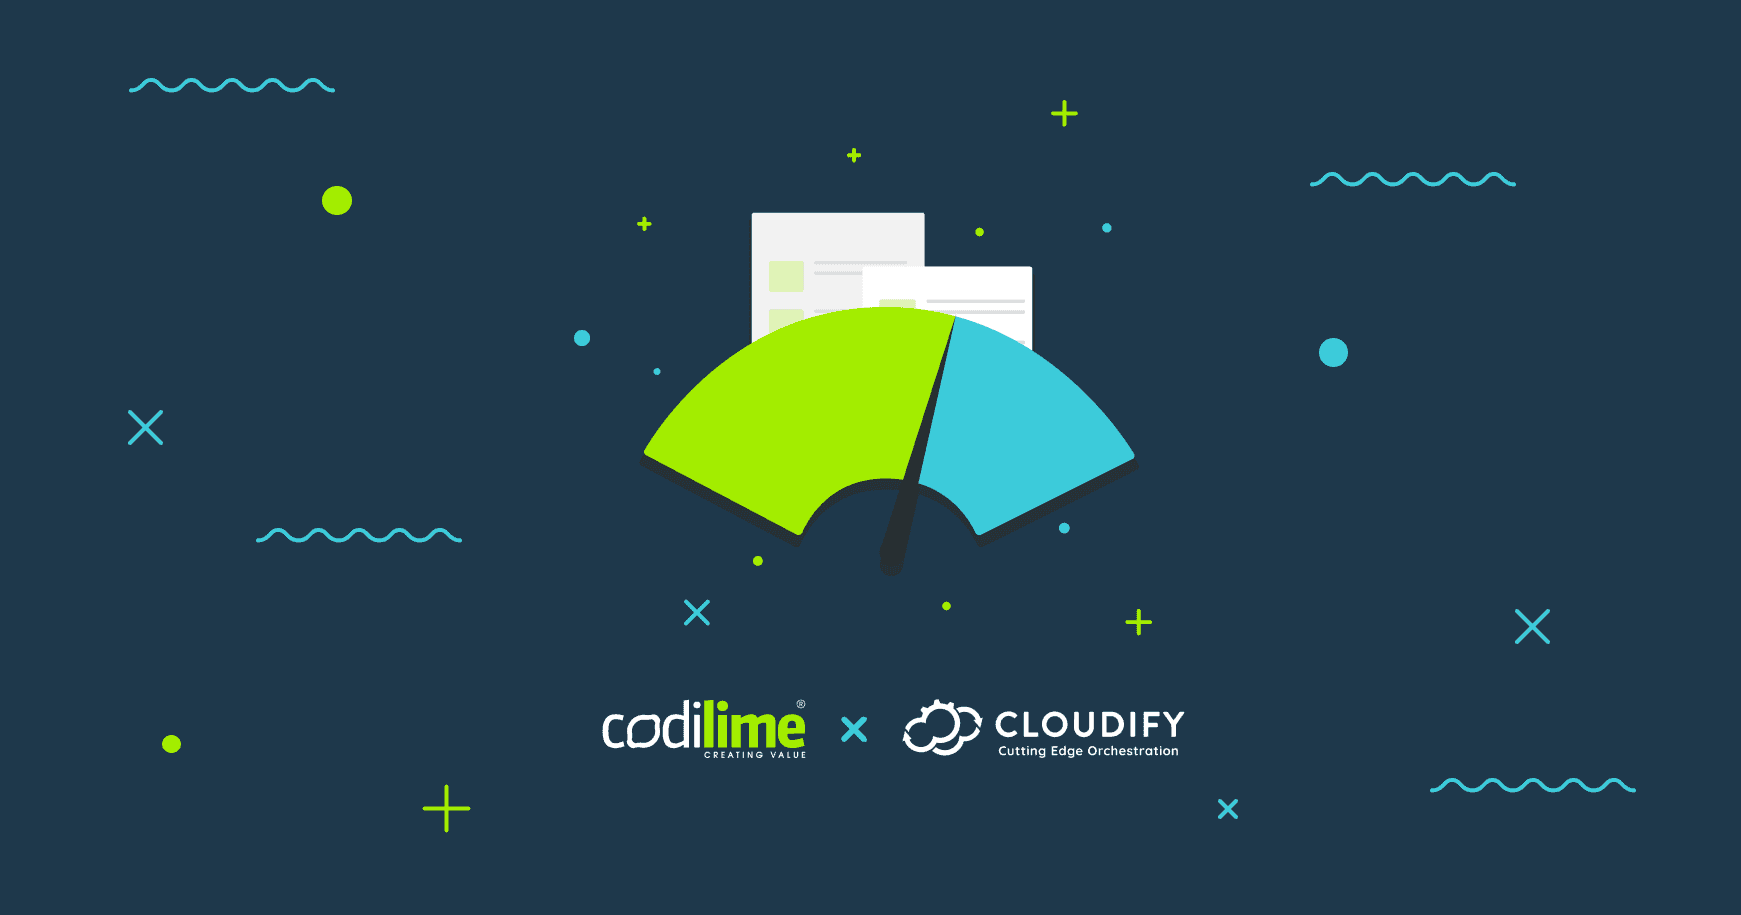 CodiLime accelerates partnership with Cloudify to provide professional services for their orchestration platform